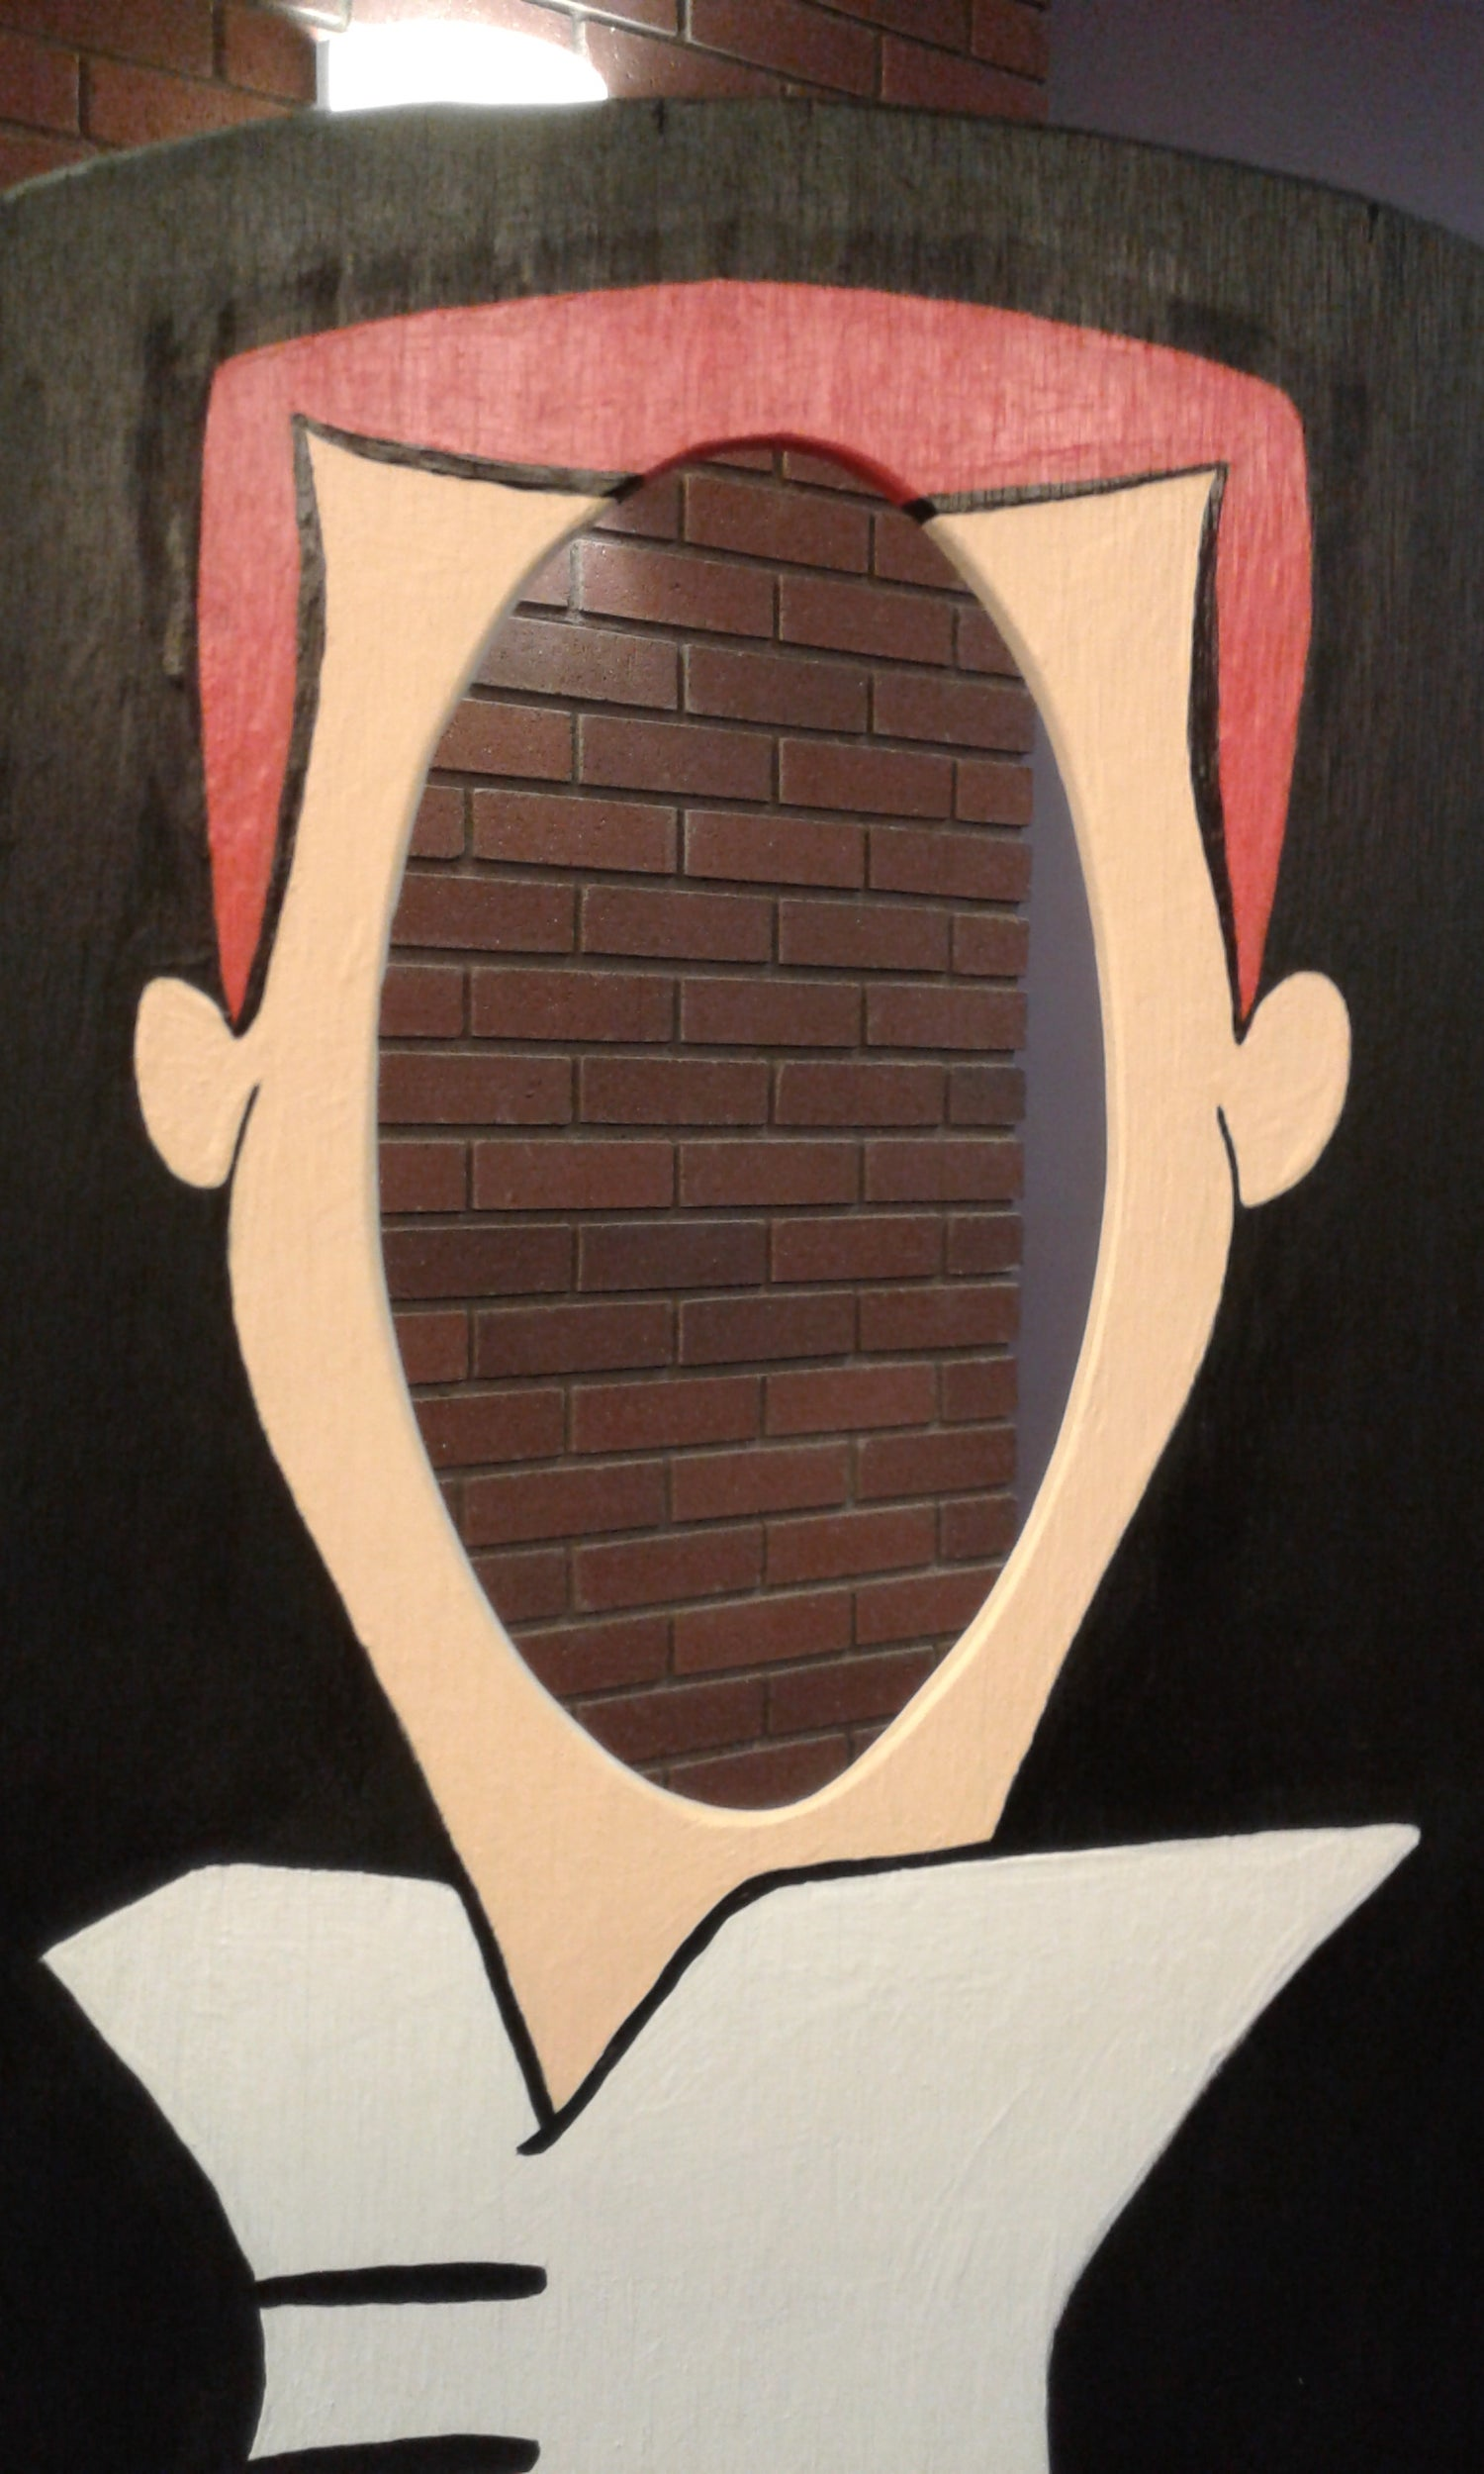 Image of George Jetson